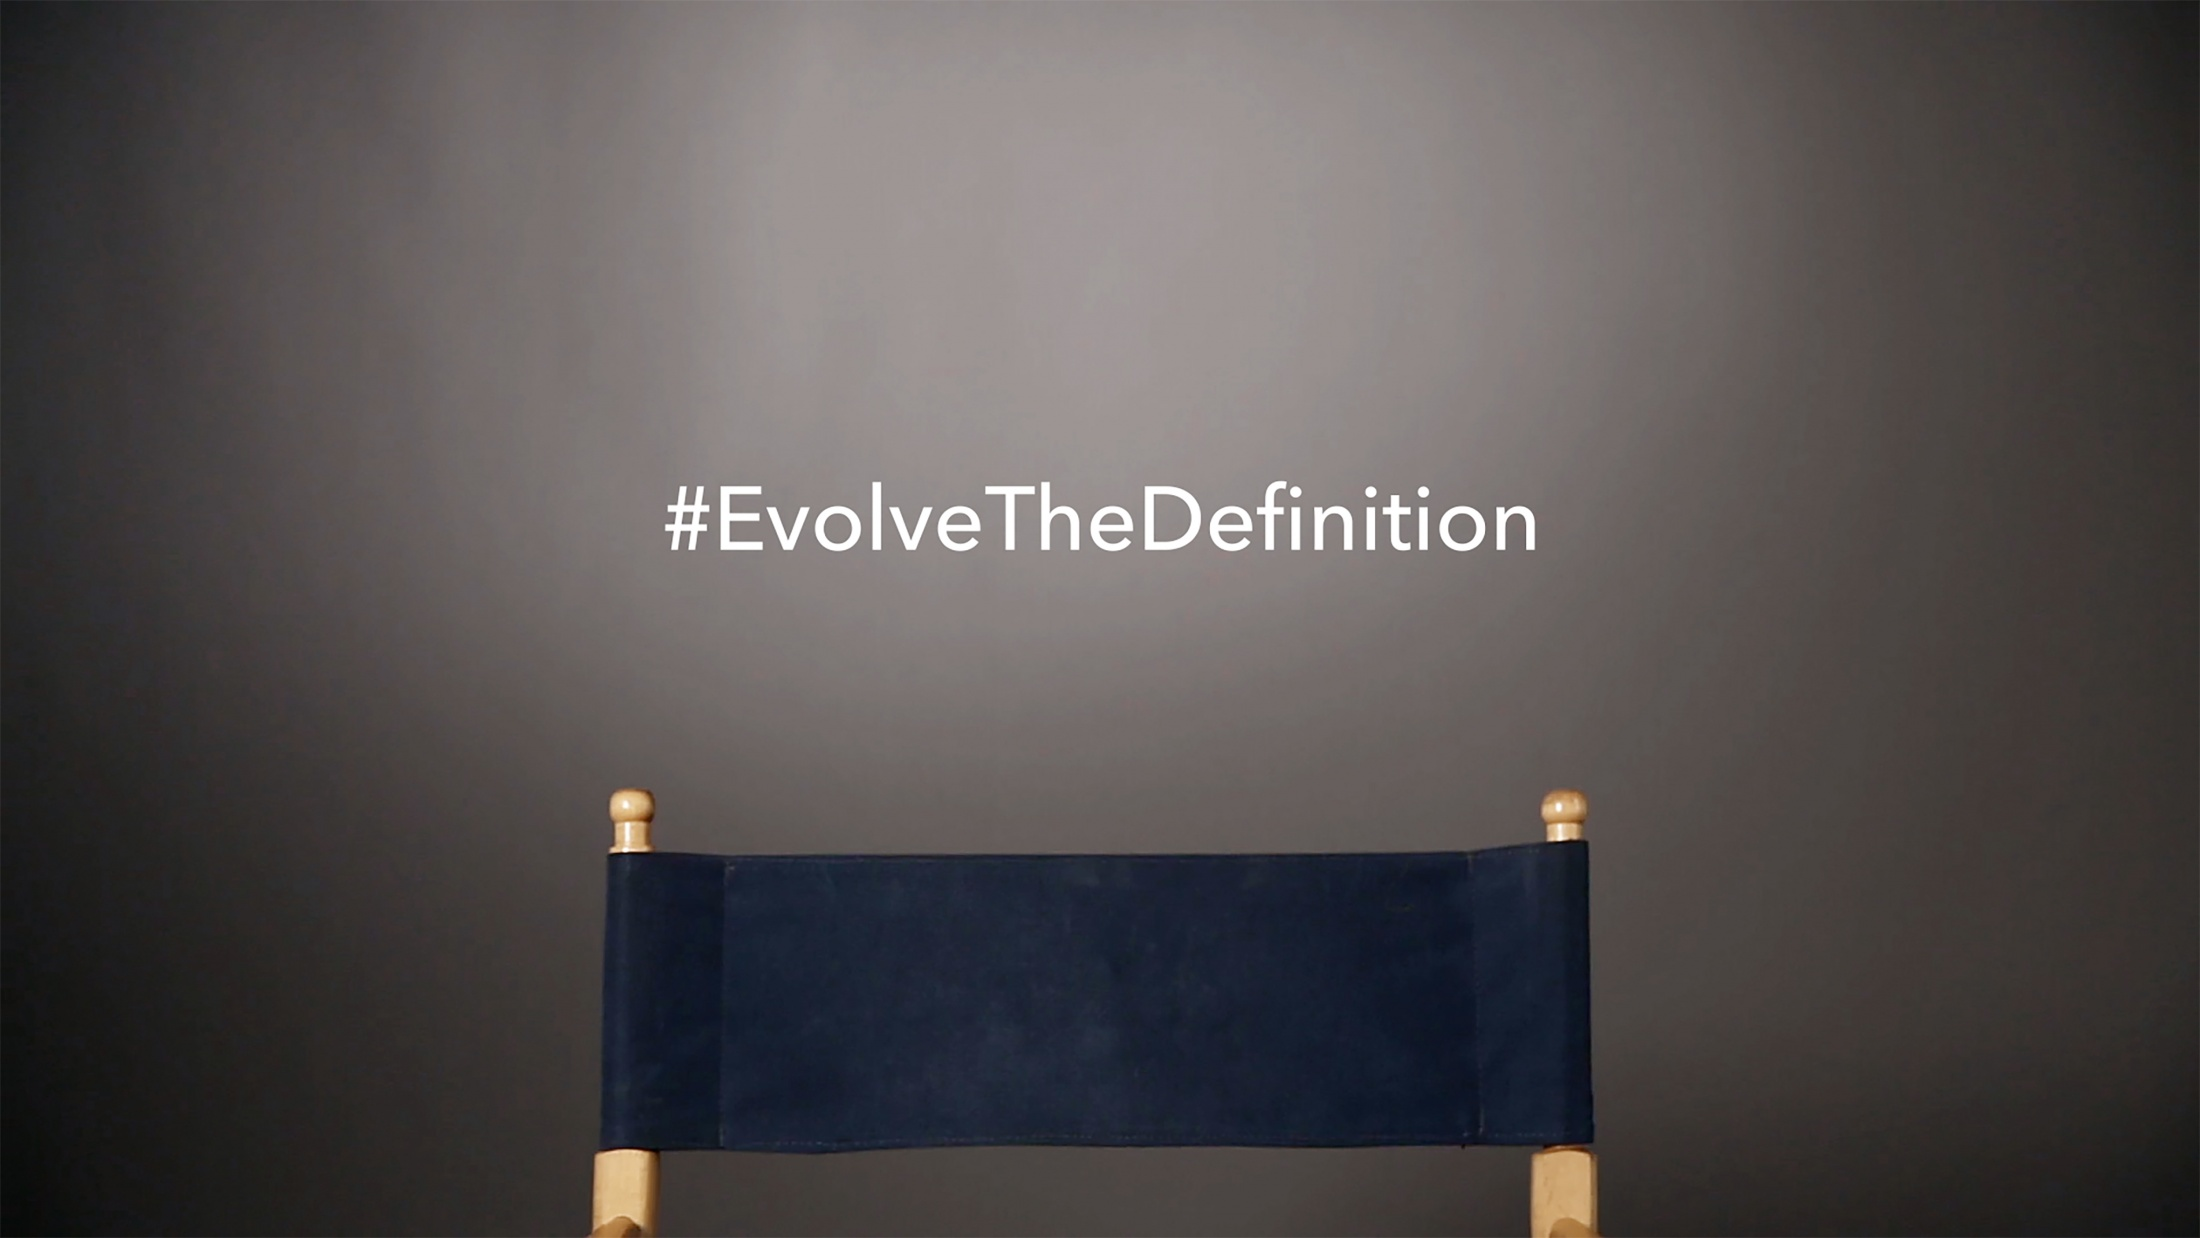 Image Media for #EvolveTheDefinition